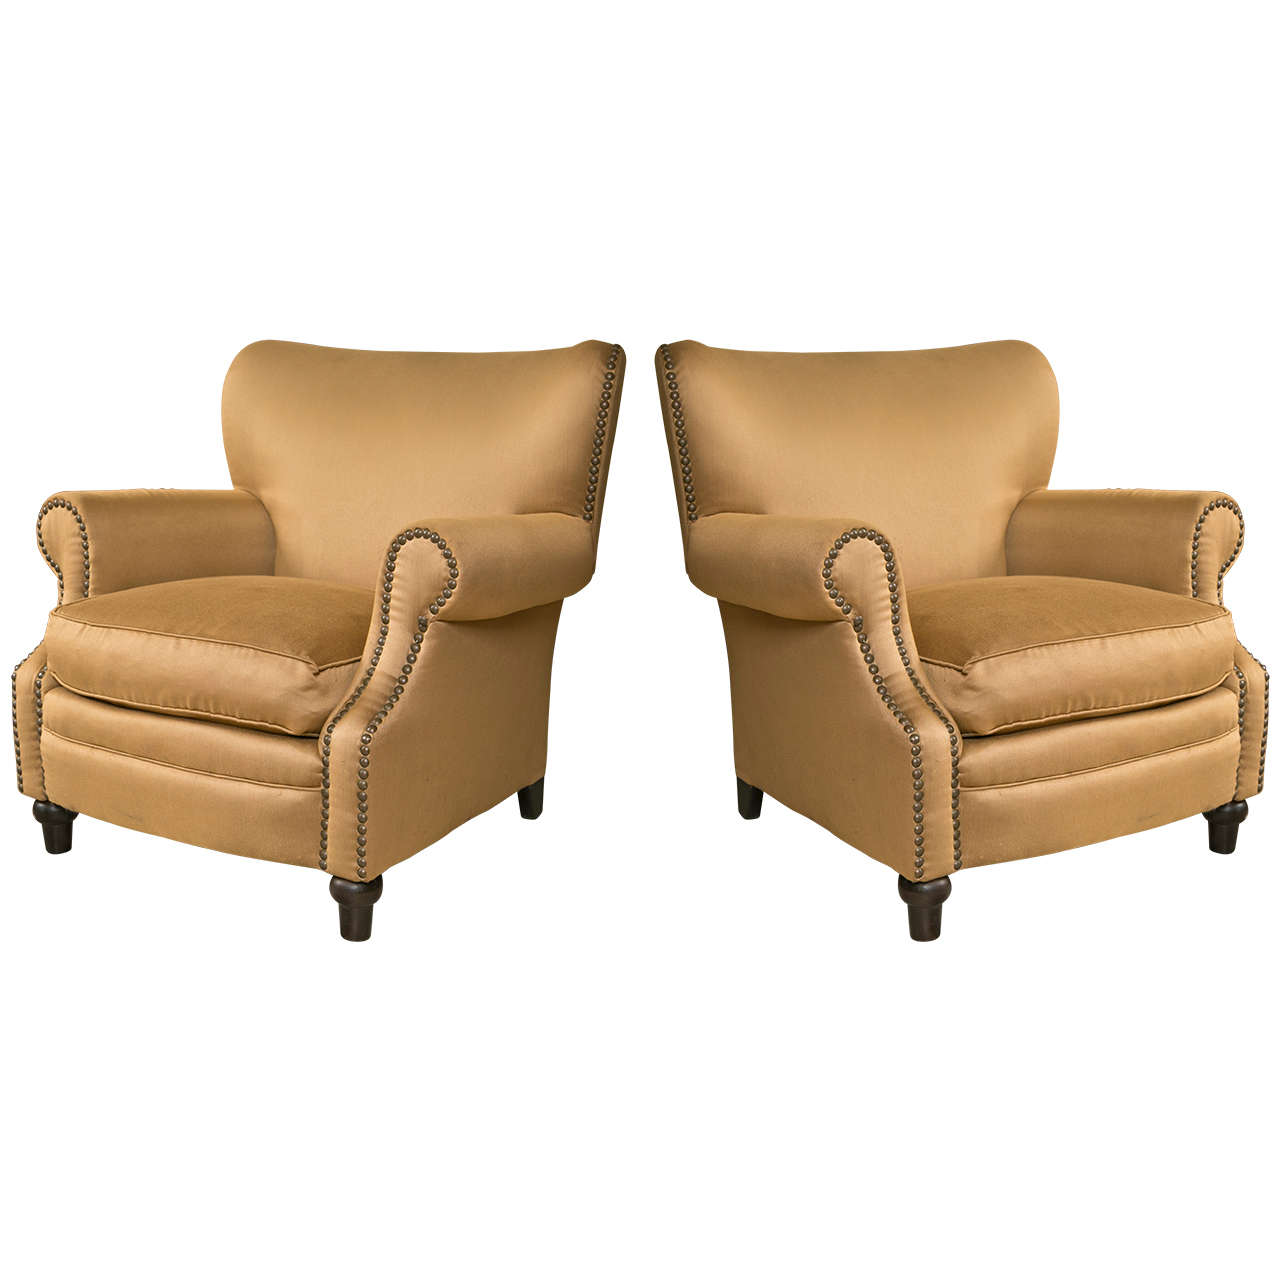 Pair Of Overstuffed Oversized Arm Lounge Chairs At 1stdibs